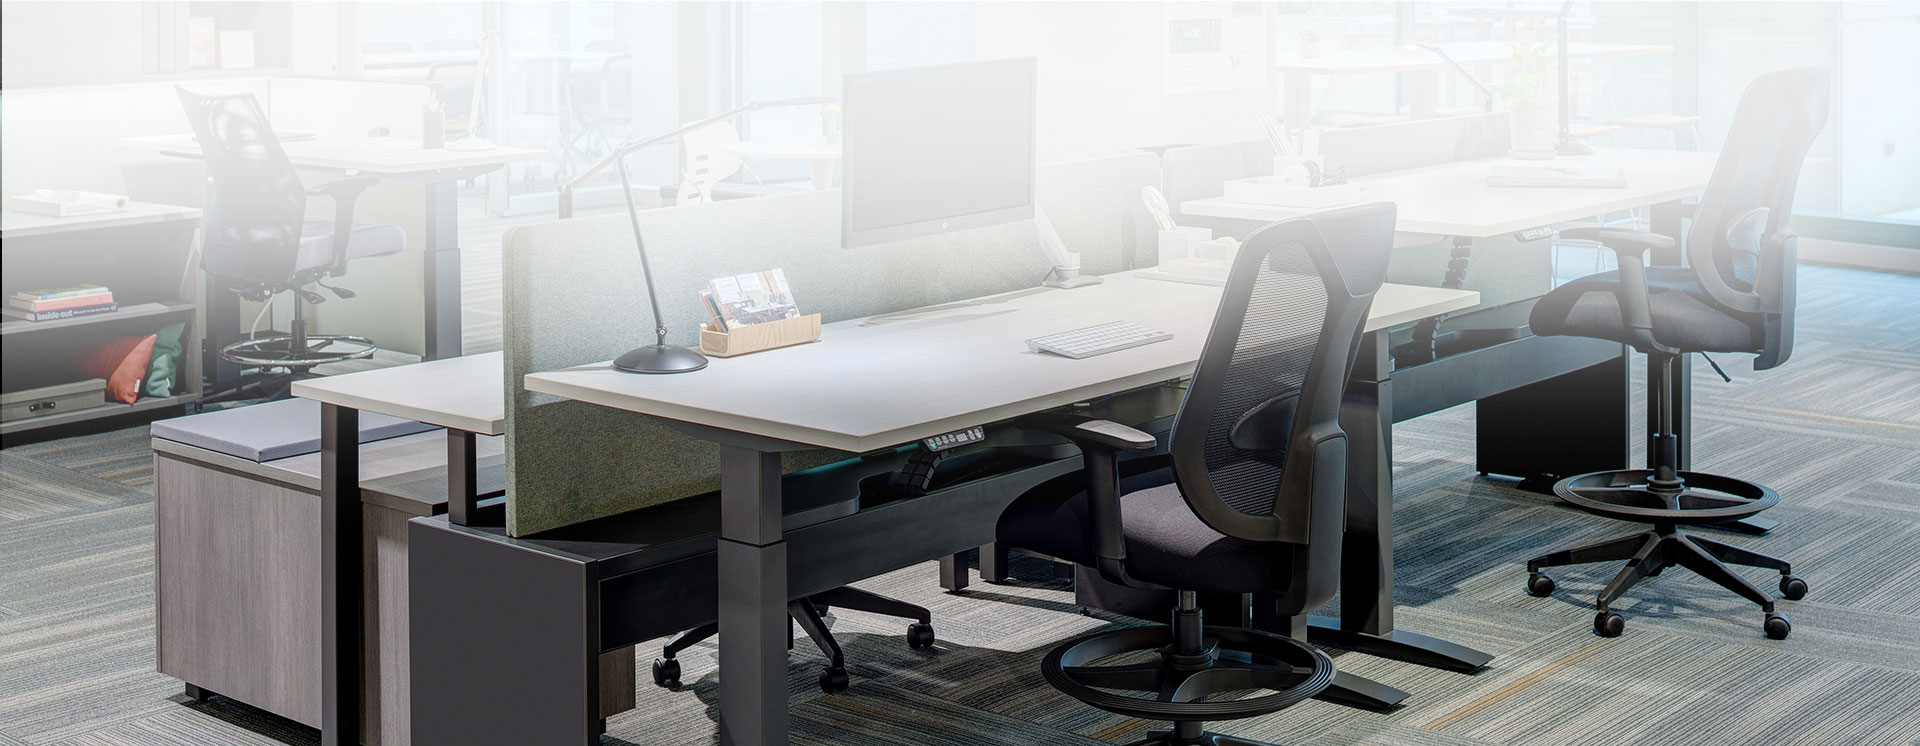 Sub Banner Height Adjustable Tables